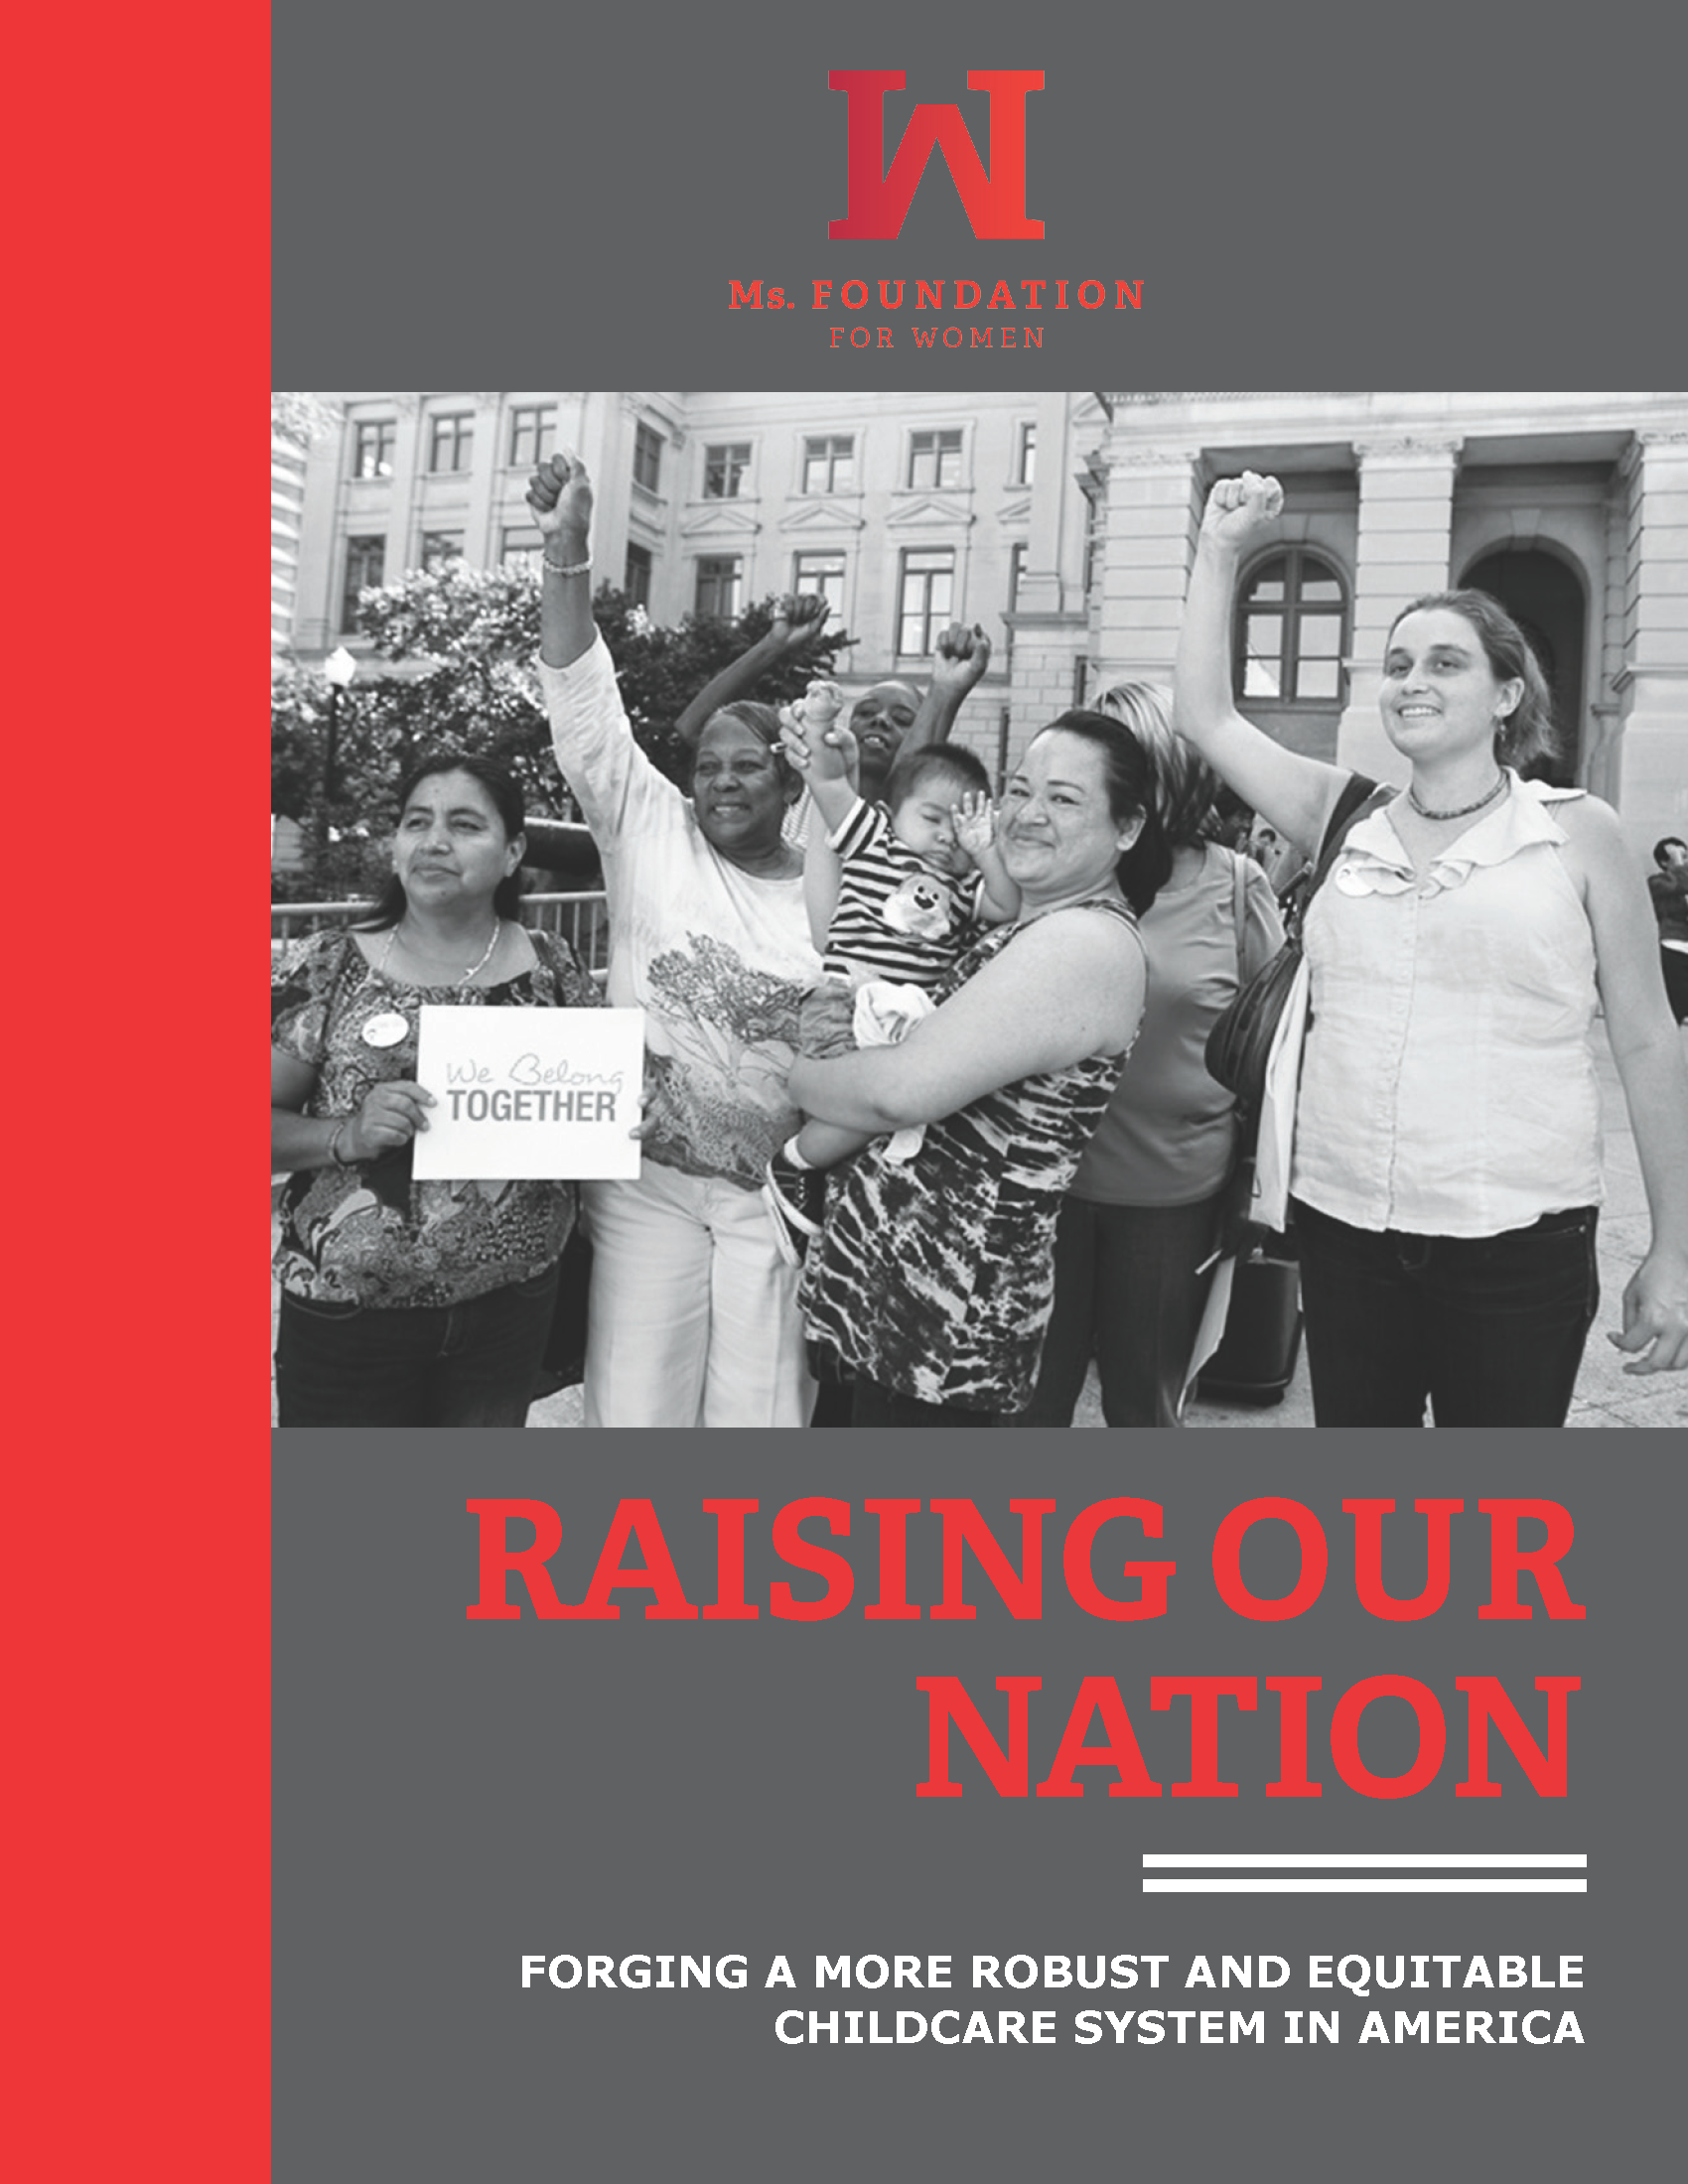 Raising Our Nation: Forging a More Robust and Equitable Childcare System in America